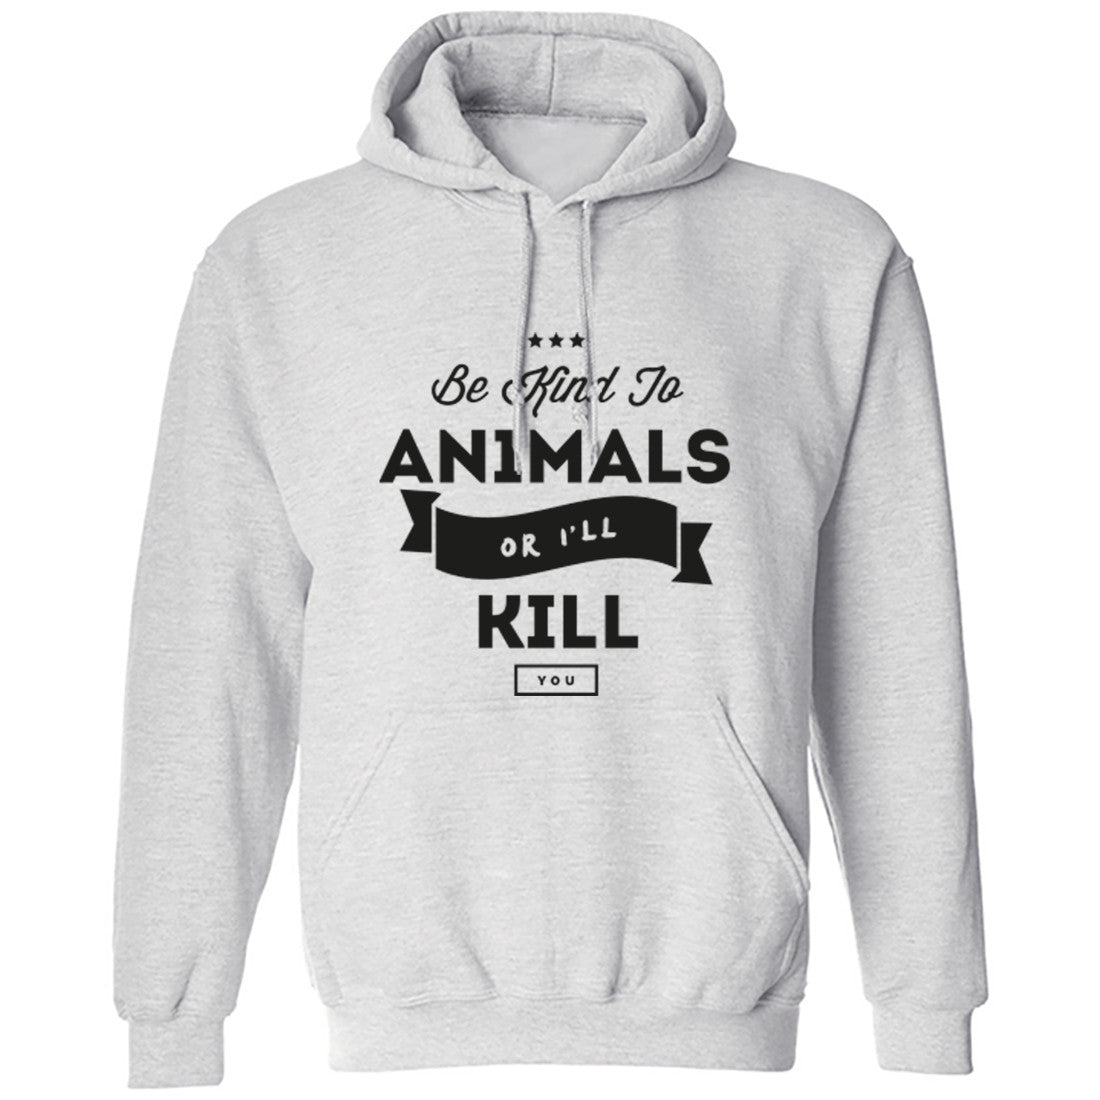 Be Kind To Animals Or I'll Kill You Unisex Hoodie K0429 - Illustrated Identity Ltd.